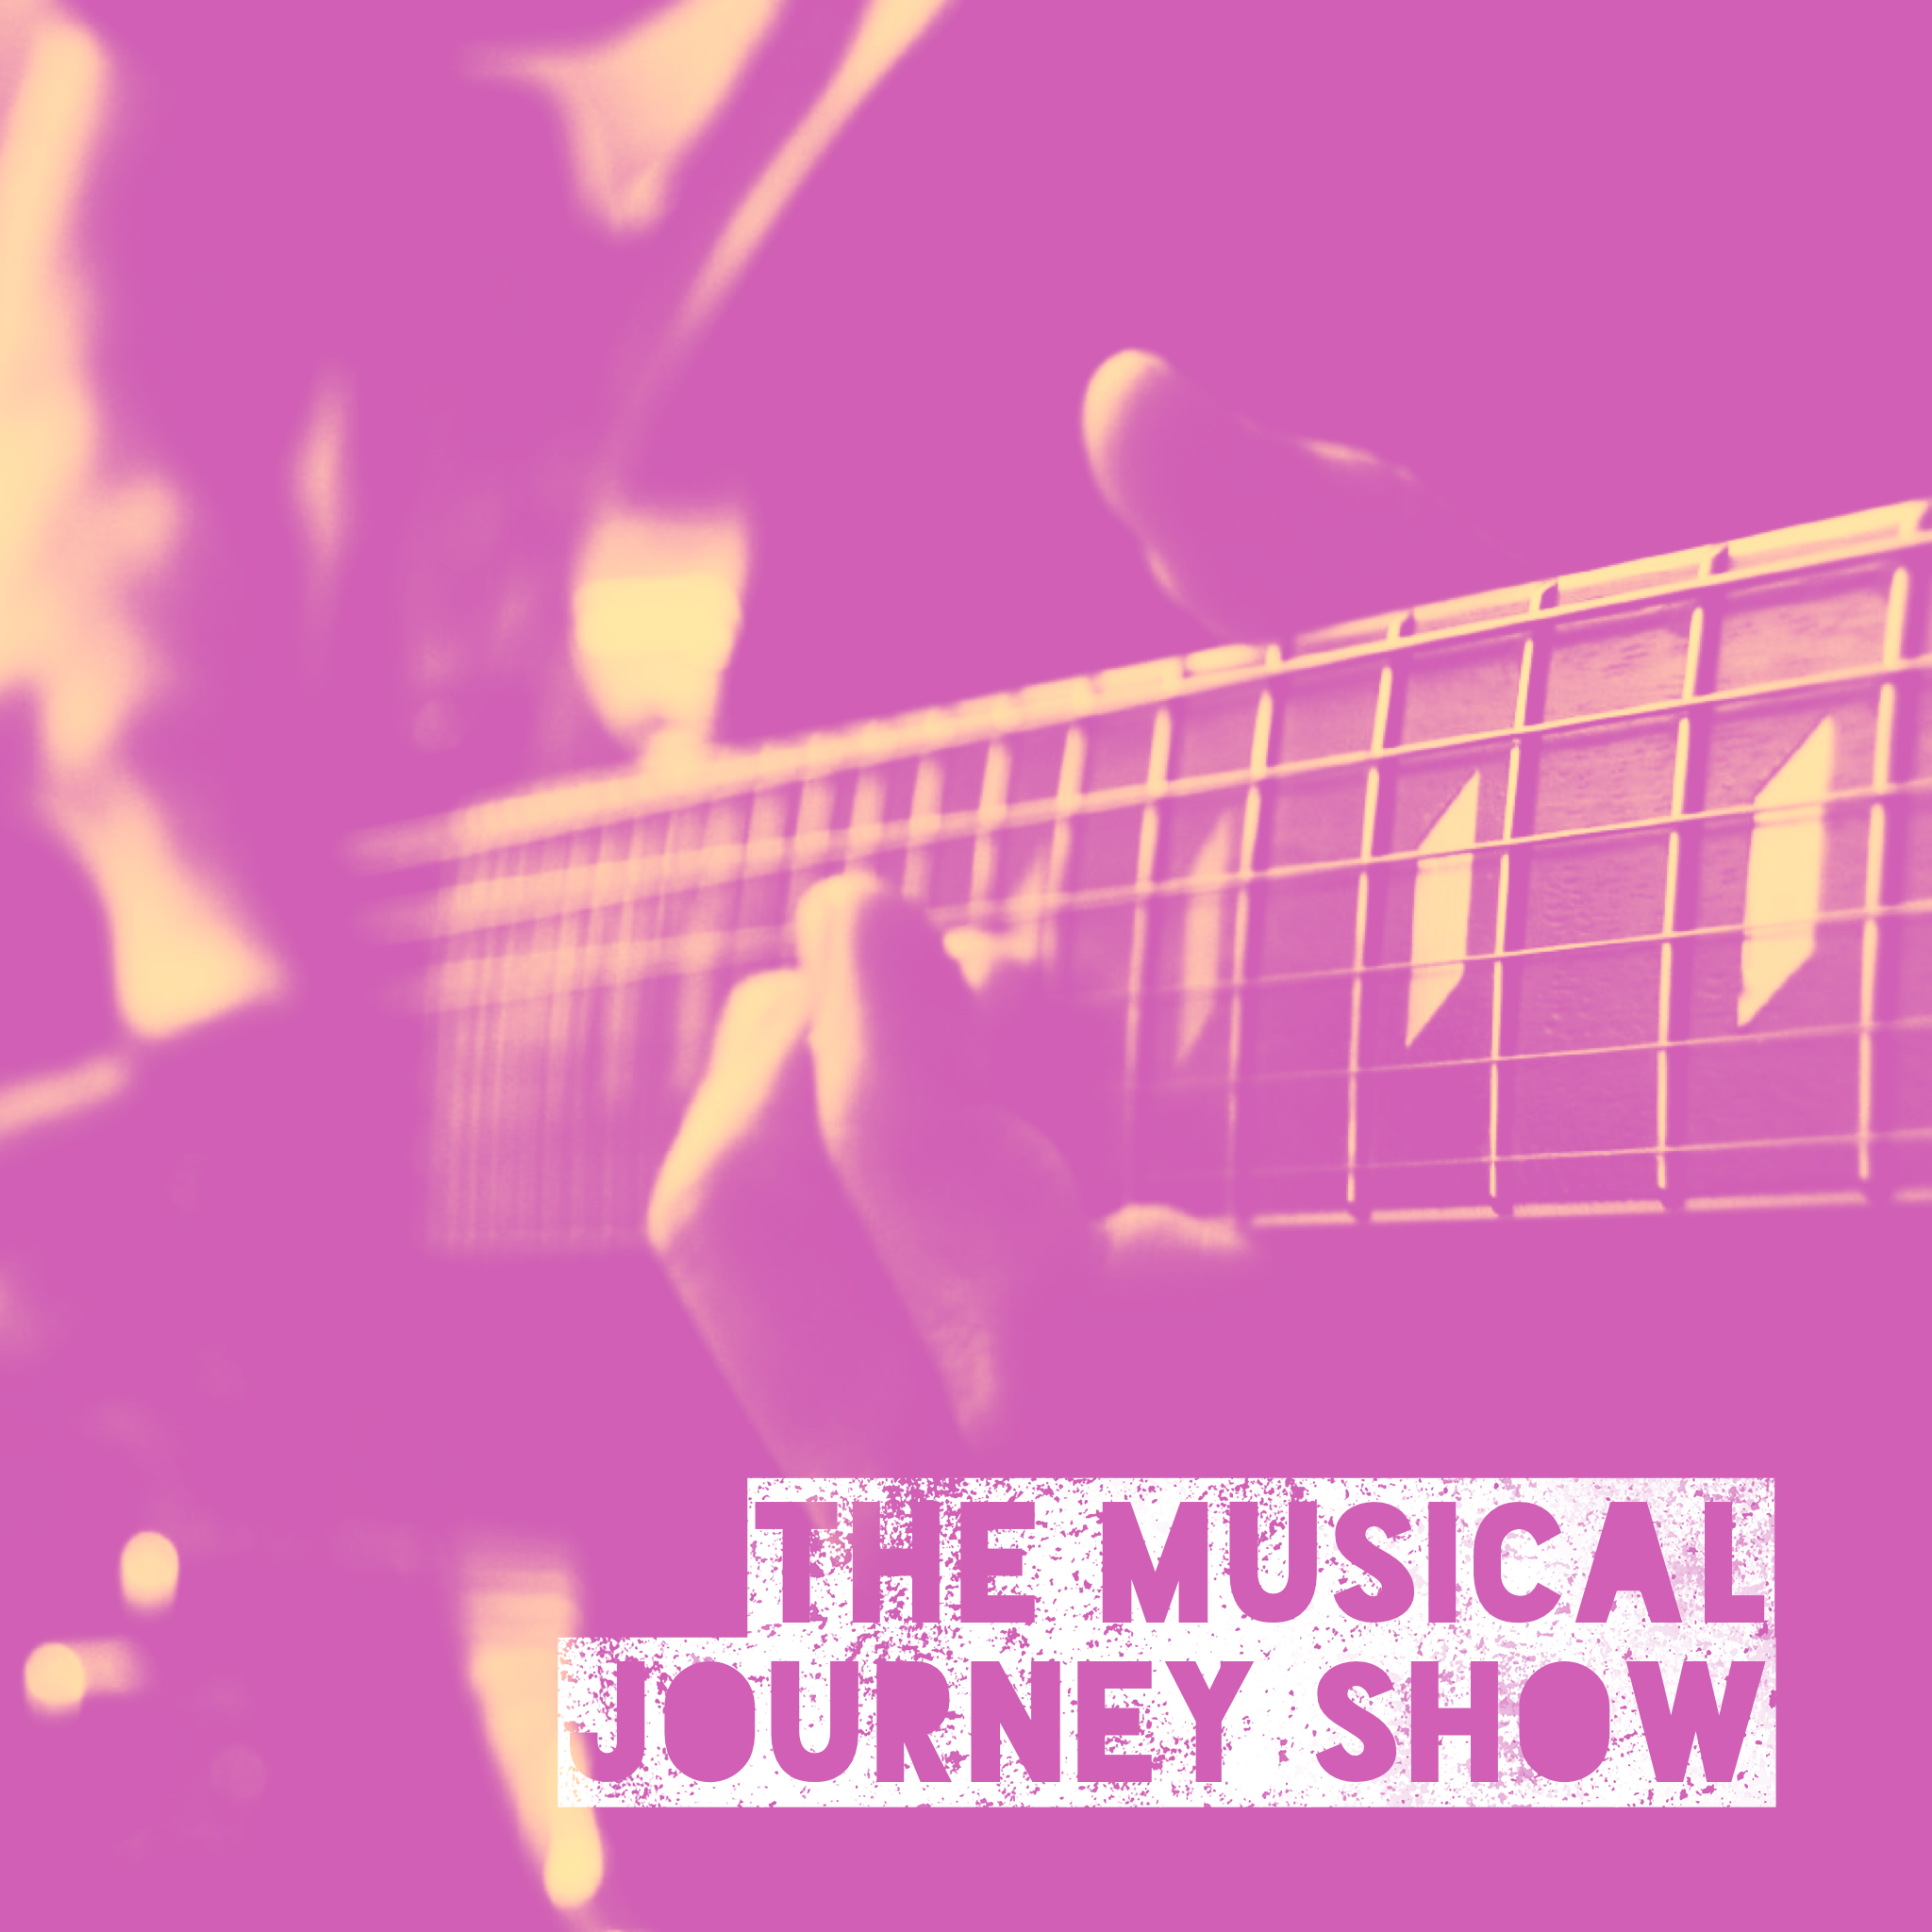 The Musical Journey Show